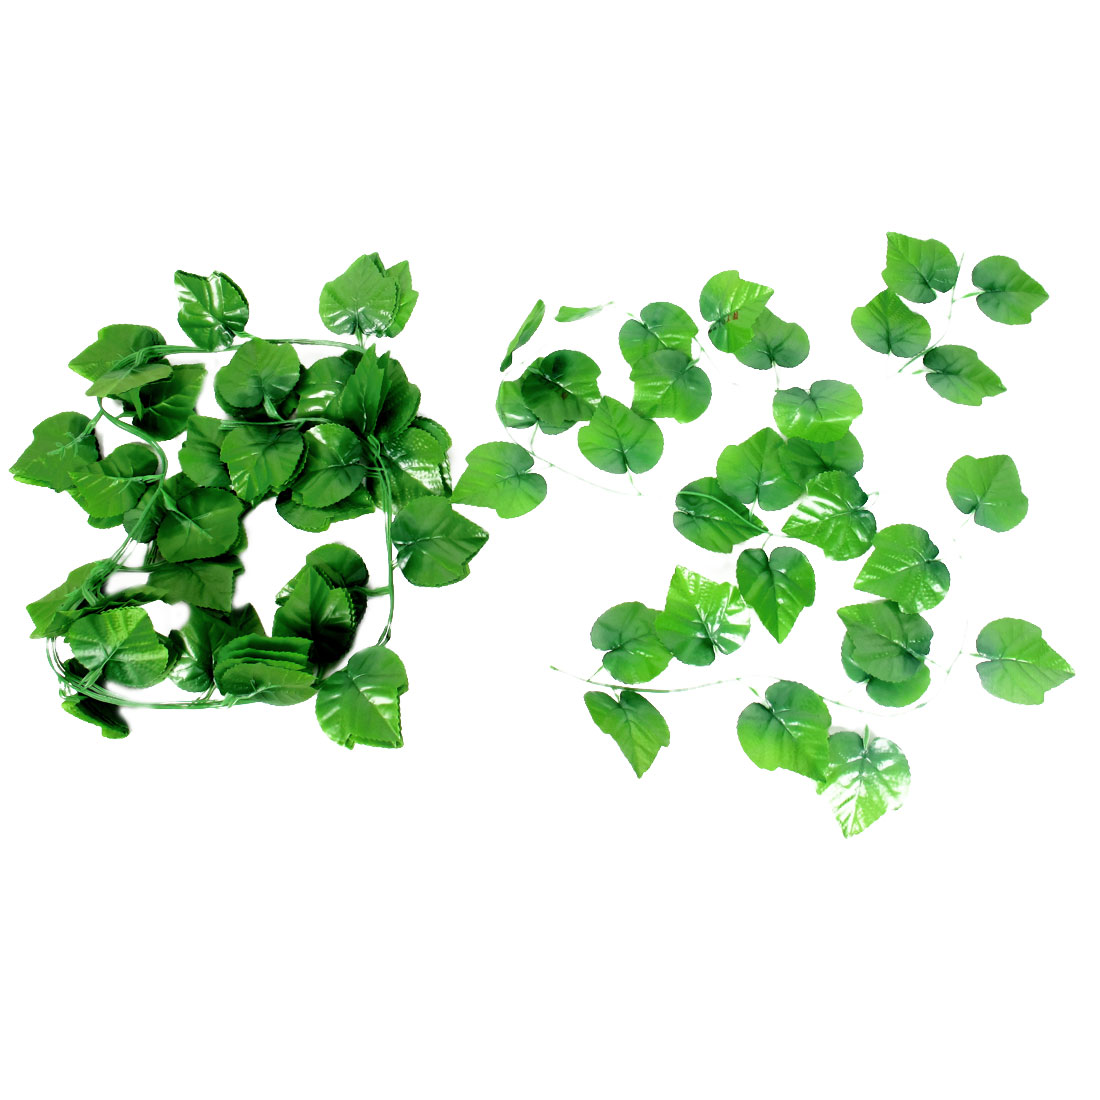 5 Pcs 1.91M Length Green Artificial Plastic Simulated Leaf Plant Vine Foliage Hanging Decor for Home Wall Wedding Party